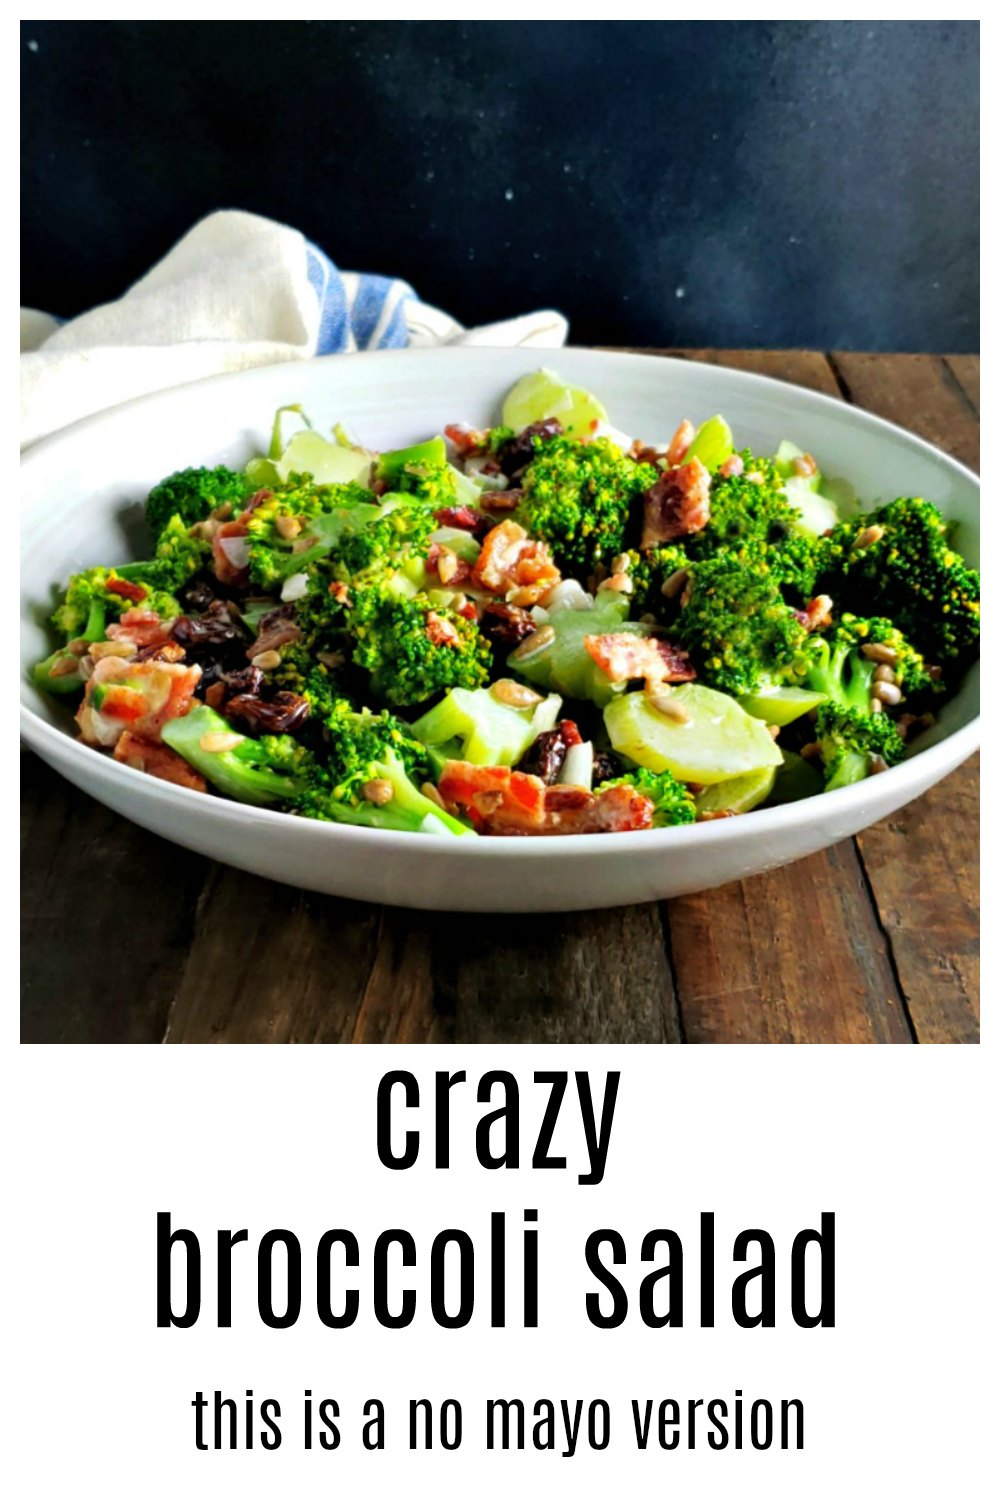 Crazy Broccoli Salad - Light, No Mayo Version. Everything the Classic original has but with a fun, tangy dressing and NO MAYO! #BroccoliSalad #CrazyBroccoliSalad #WackyBroccoliSalad #BroccoliRaisinSunflowerSalad #BroccoliRaisinCashewSalad